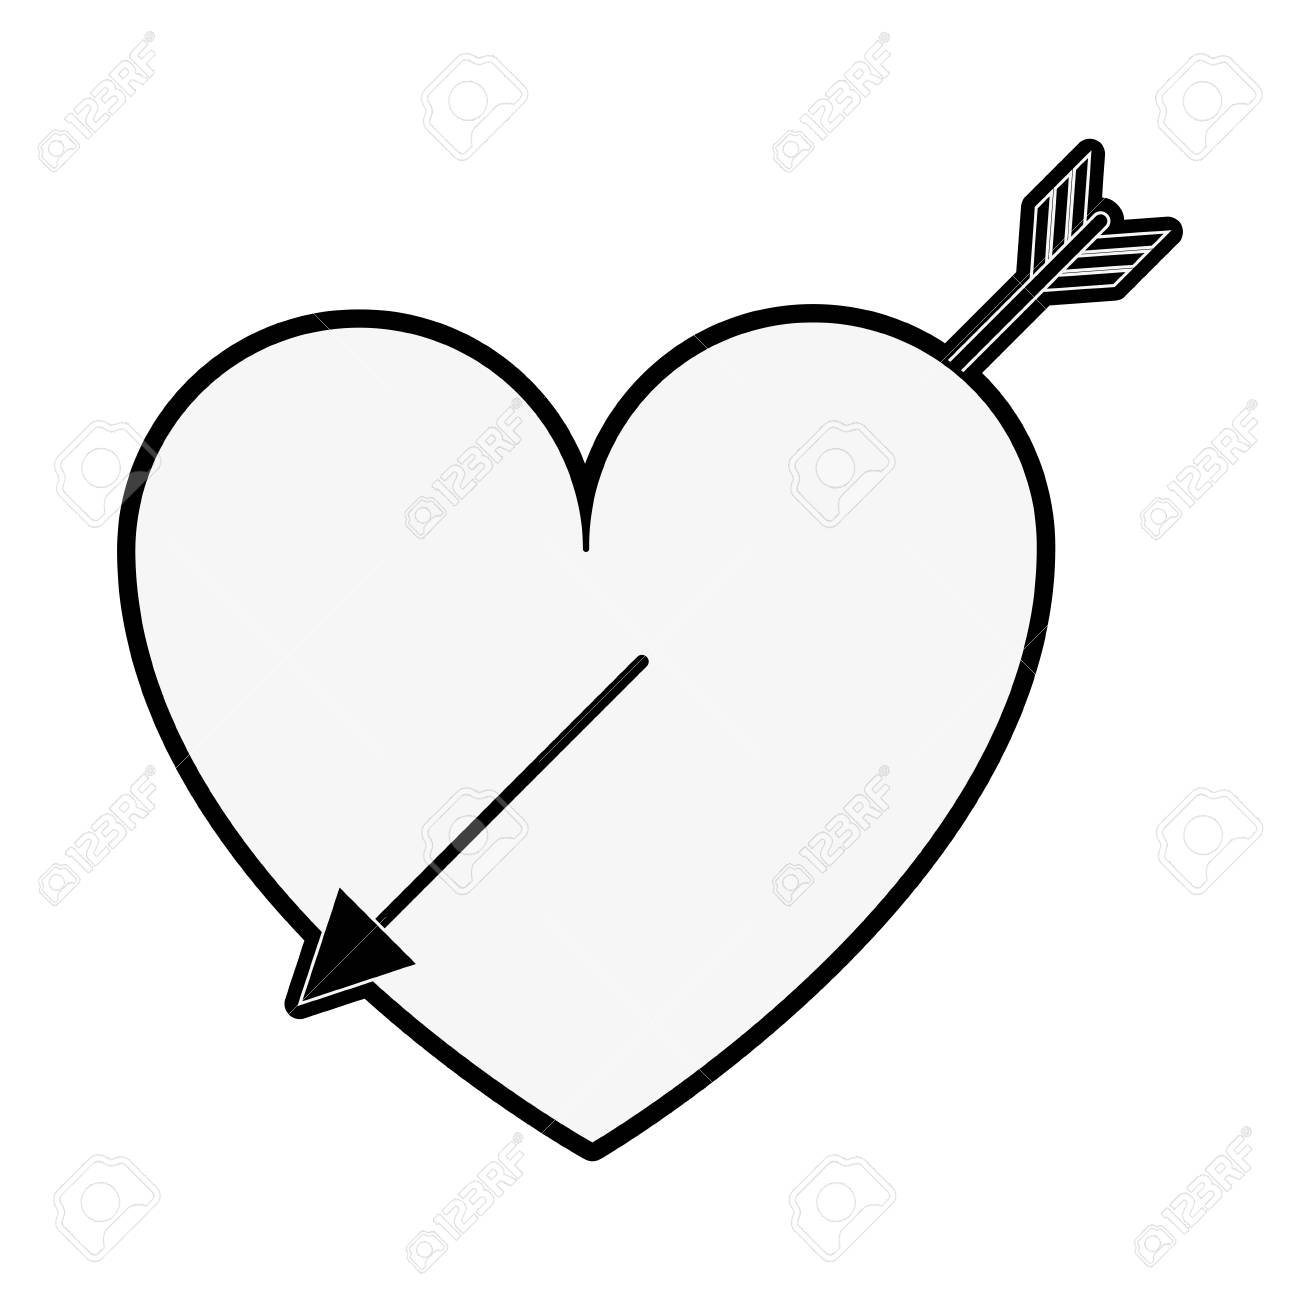 Heart Cartoon With Arrow Valentines Day Related Icon Image Vector